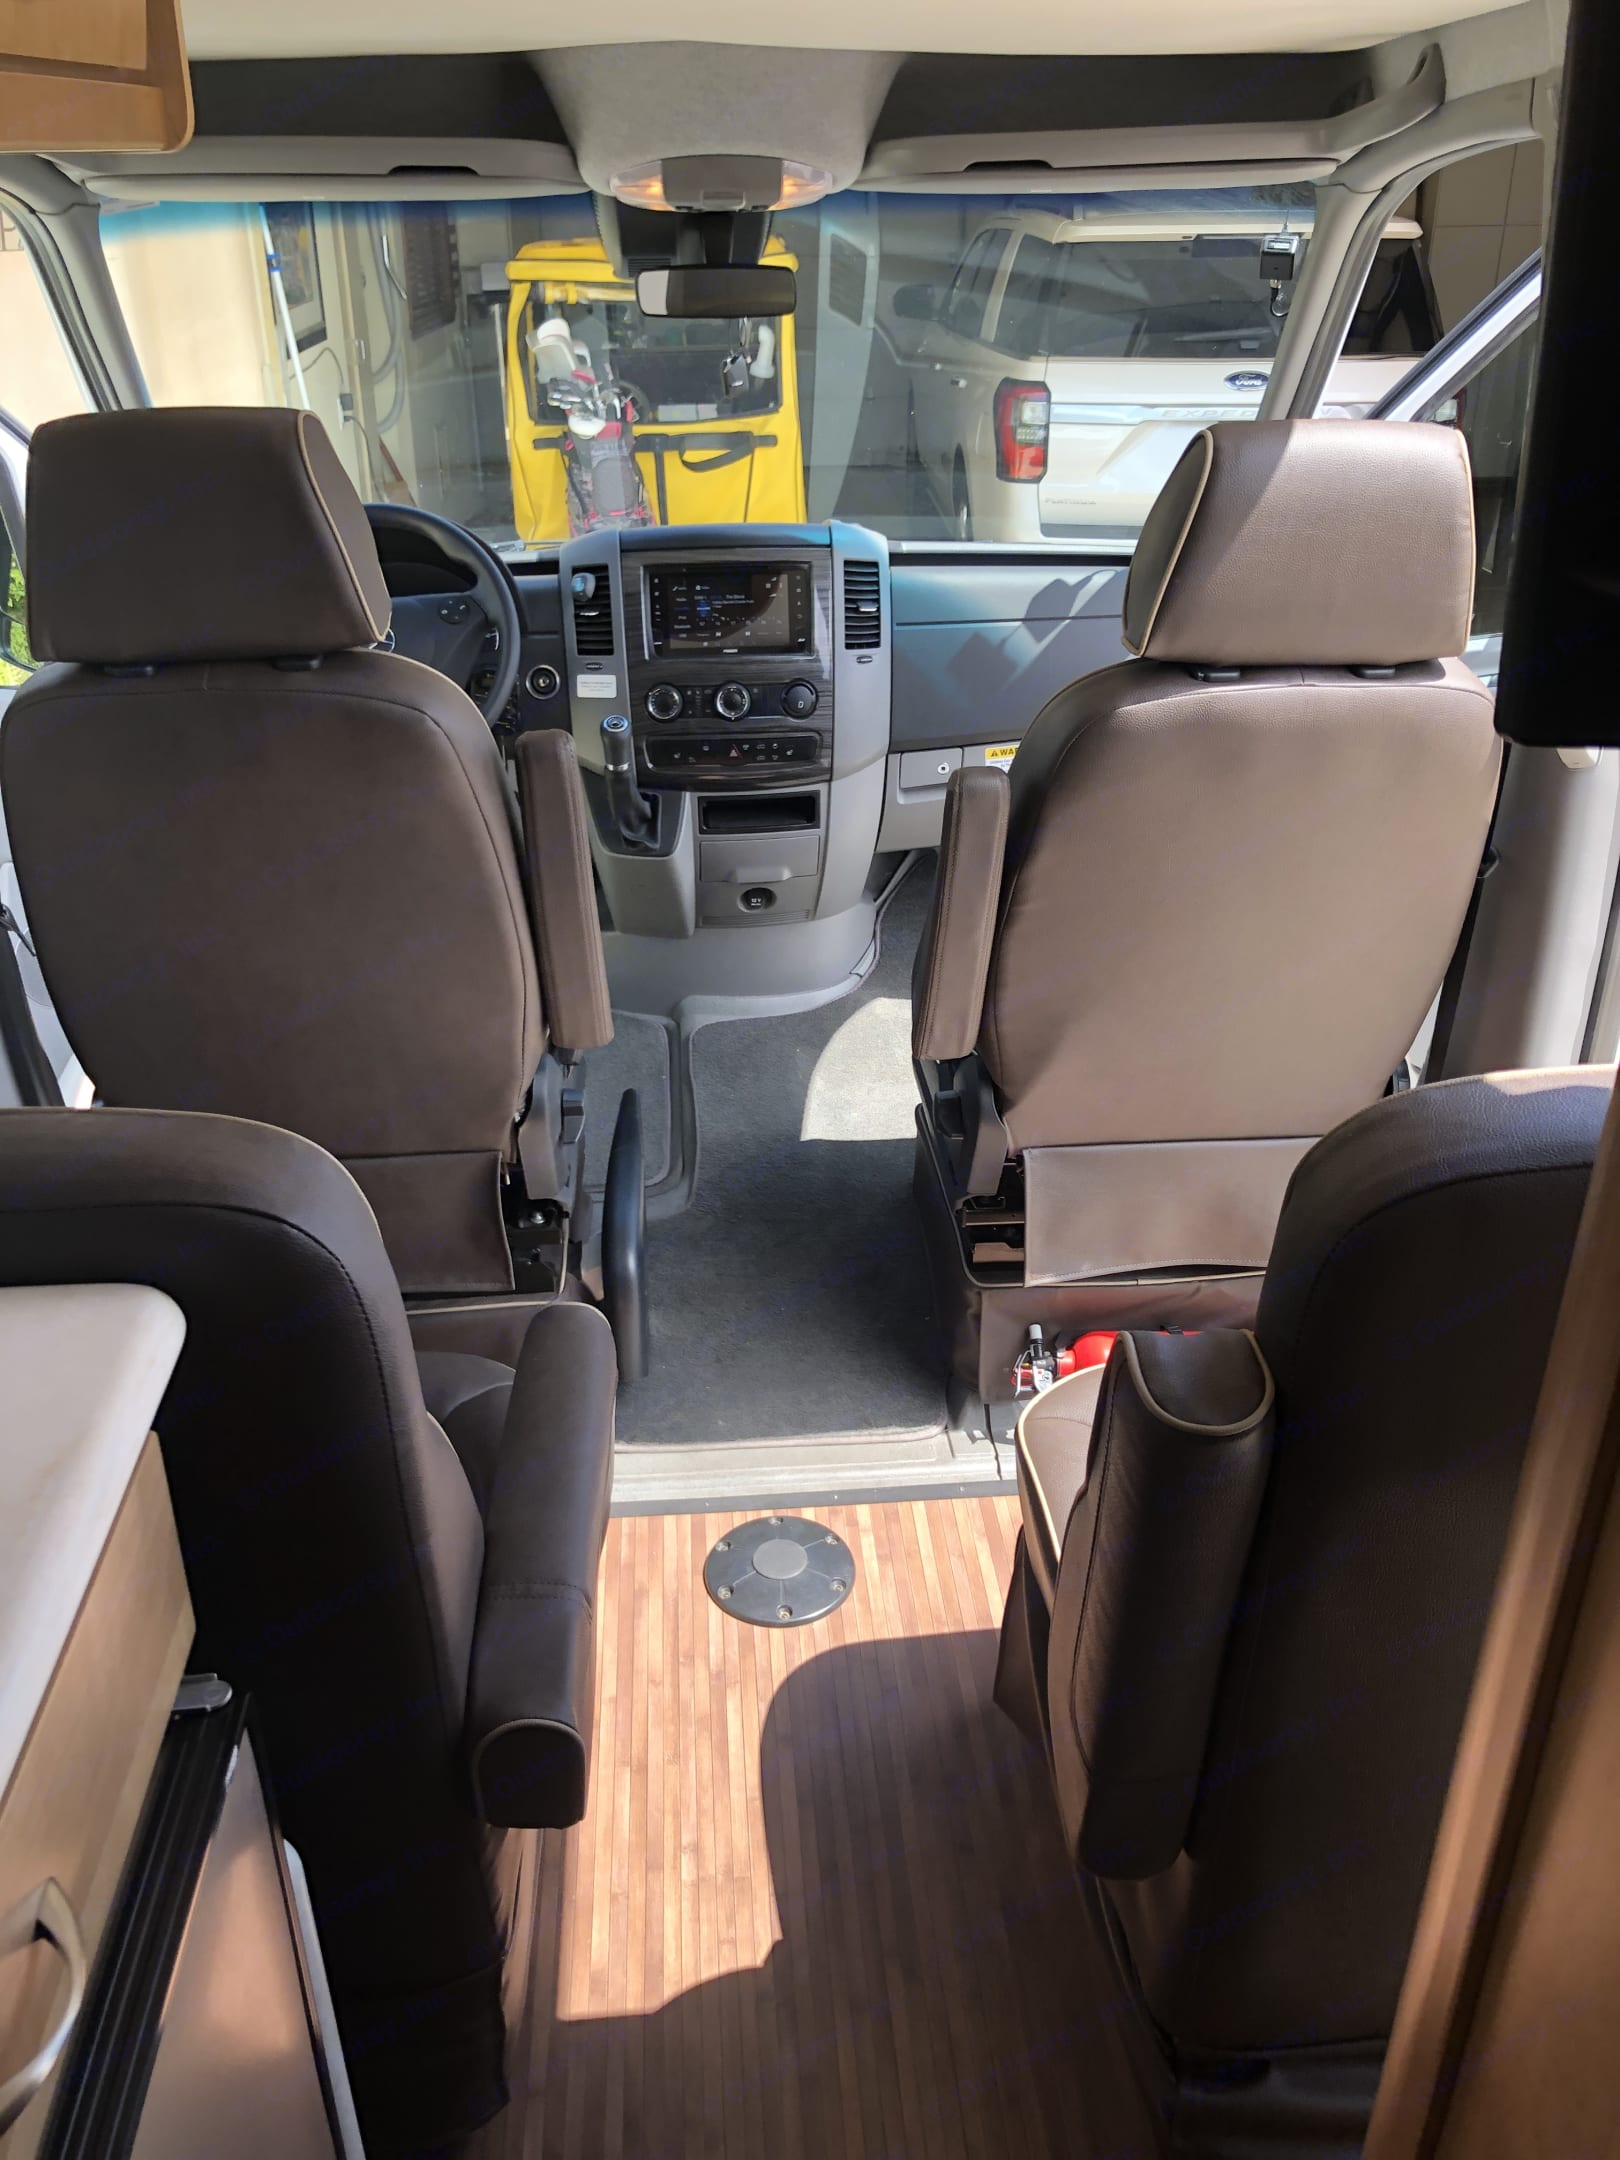 4 captain seat up front for a comfort traveling. Mercedes-Benz Sprinter 2017